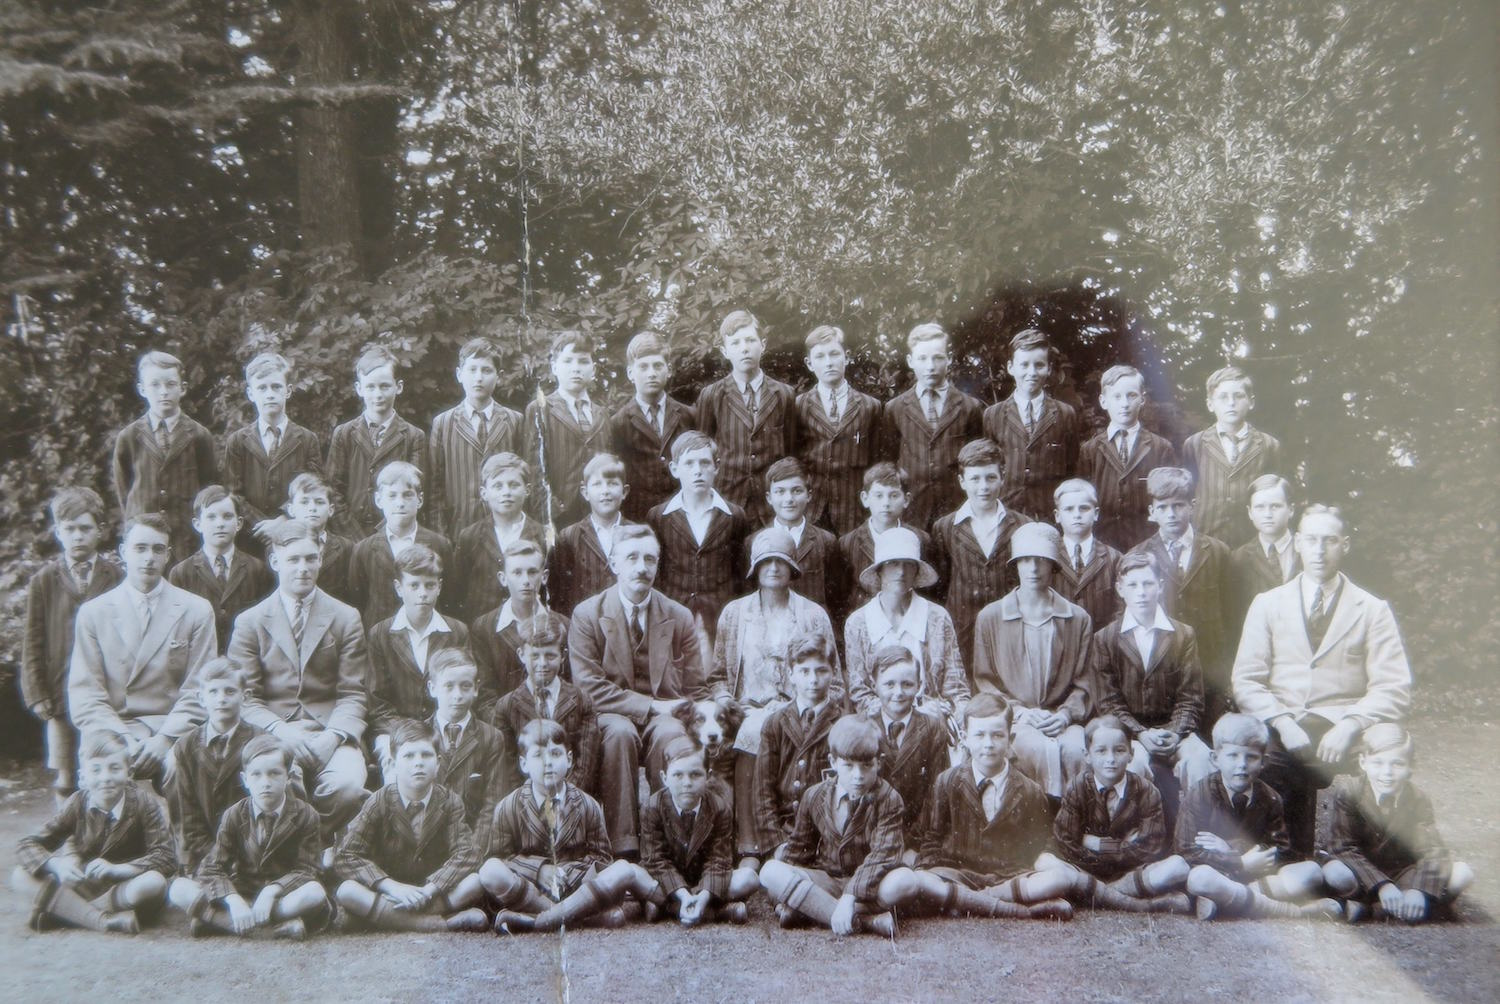 This archive image from the 1930s shows Sompting Abbotts' staff and boarders at the time: it's likely that Jim and his brother David are among the pupils pictured.